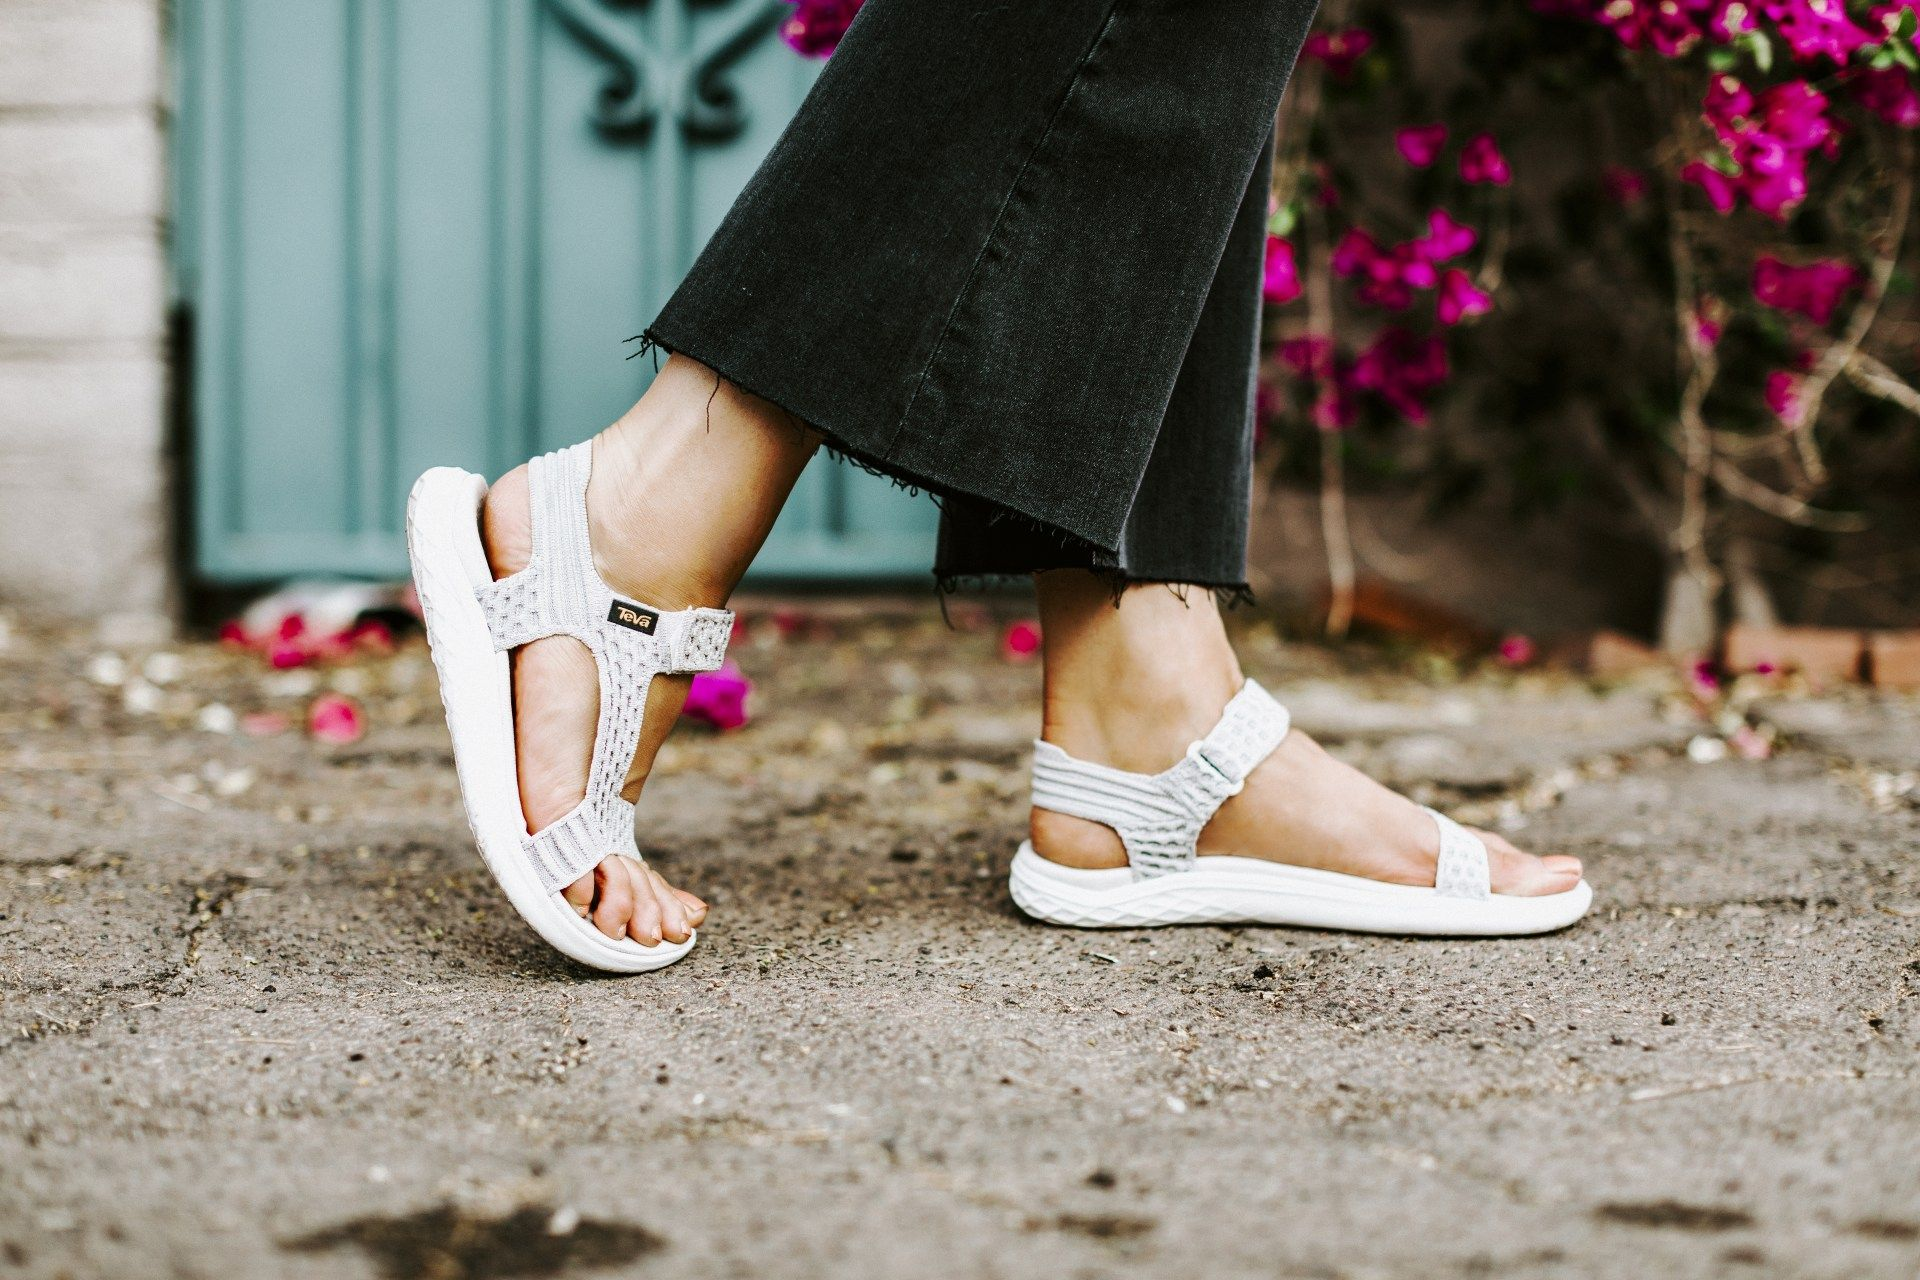 Strap Into Spring With Teva Sandals Kate Nelle Teva Sandals Teva Sandals